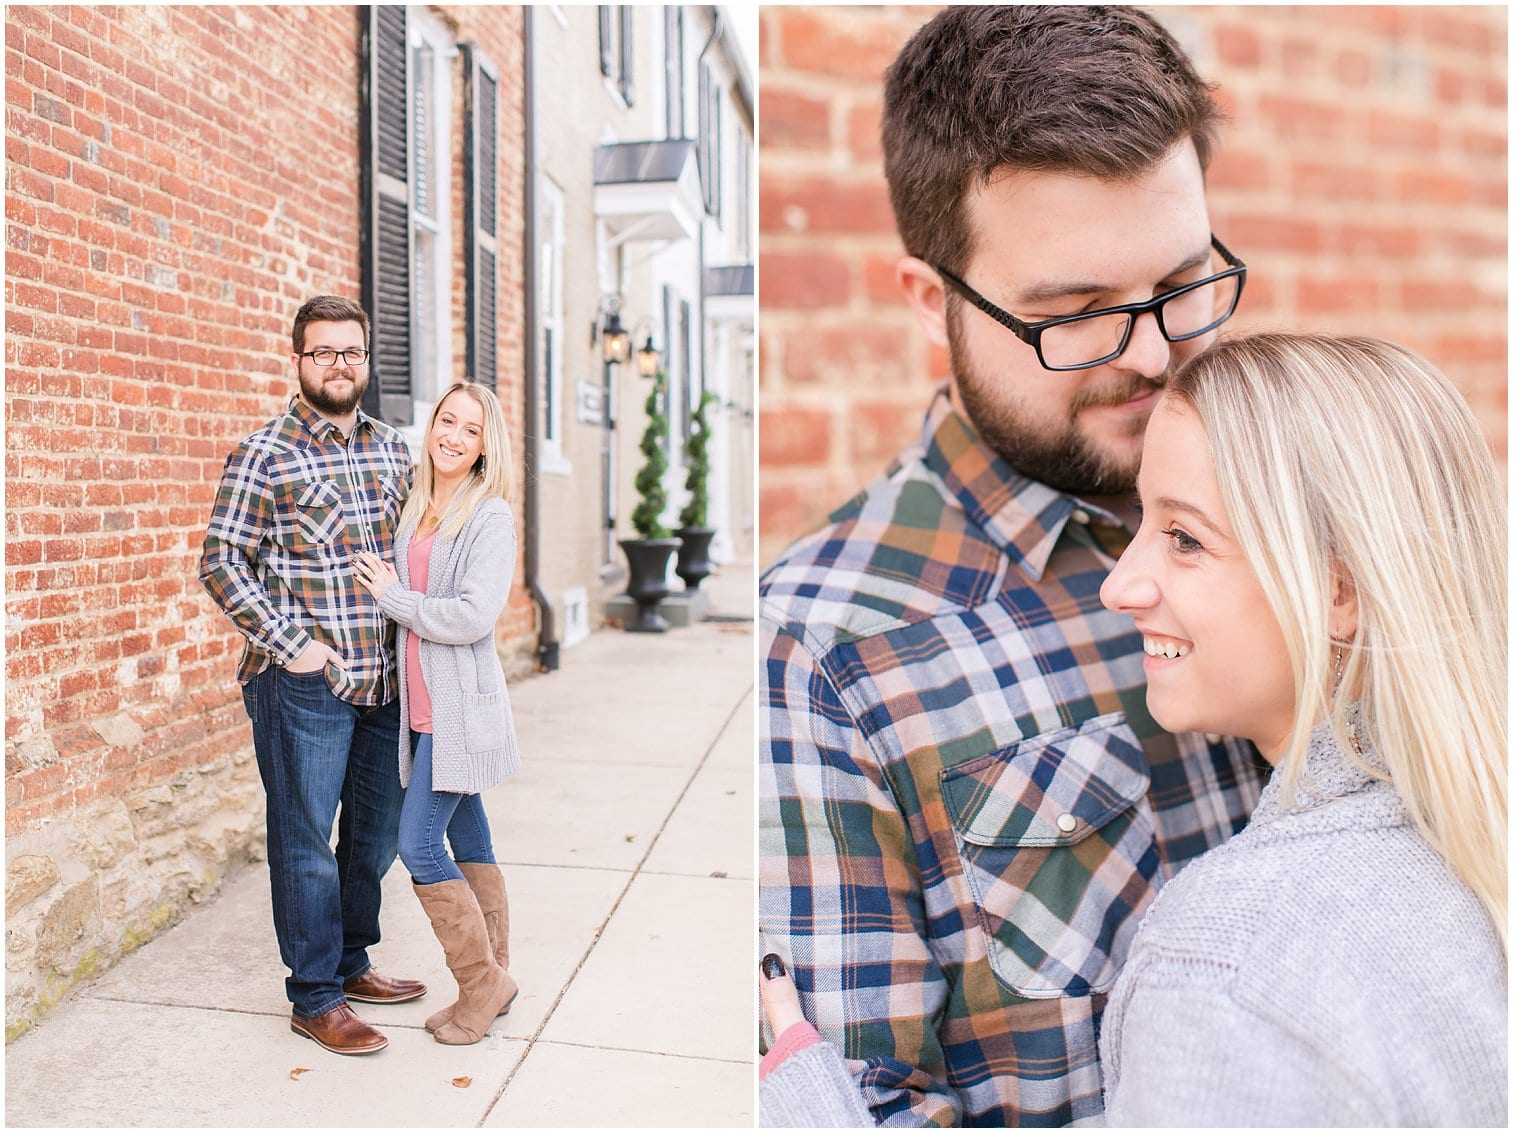 Downtown Middleburg Engagement Photos Virginia Wedding Photographer Megan Kelsey Photography Blair & Mike-5.jpg